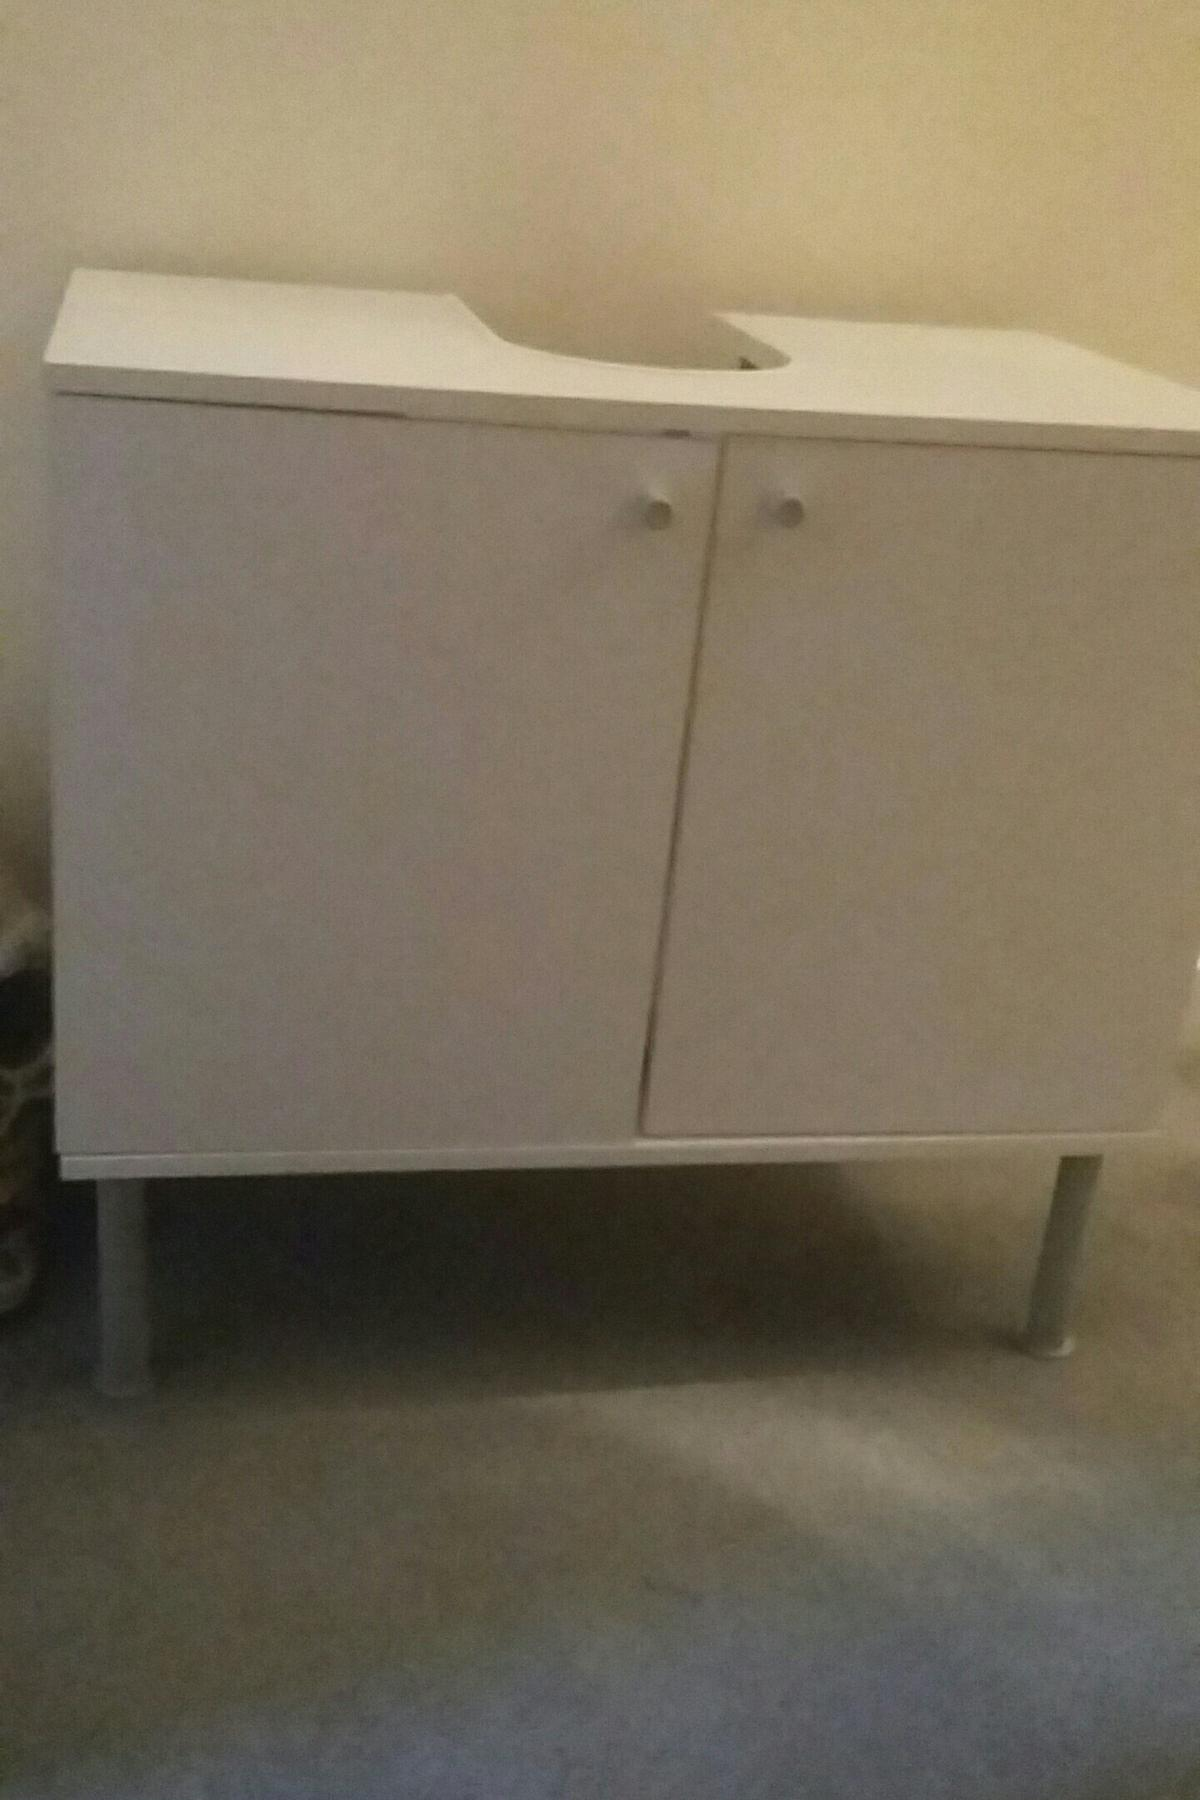 Admirable Ikea Fullen Bathroom Under Sink Cabinet In N1 London For Home Interior And Landscaping Eliaenasavecom